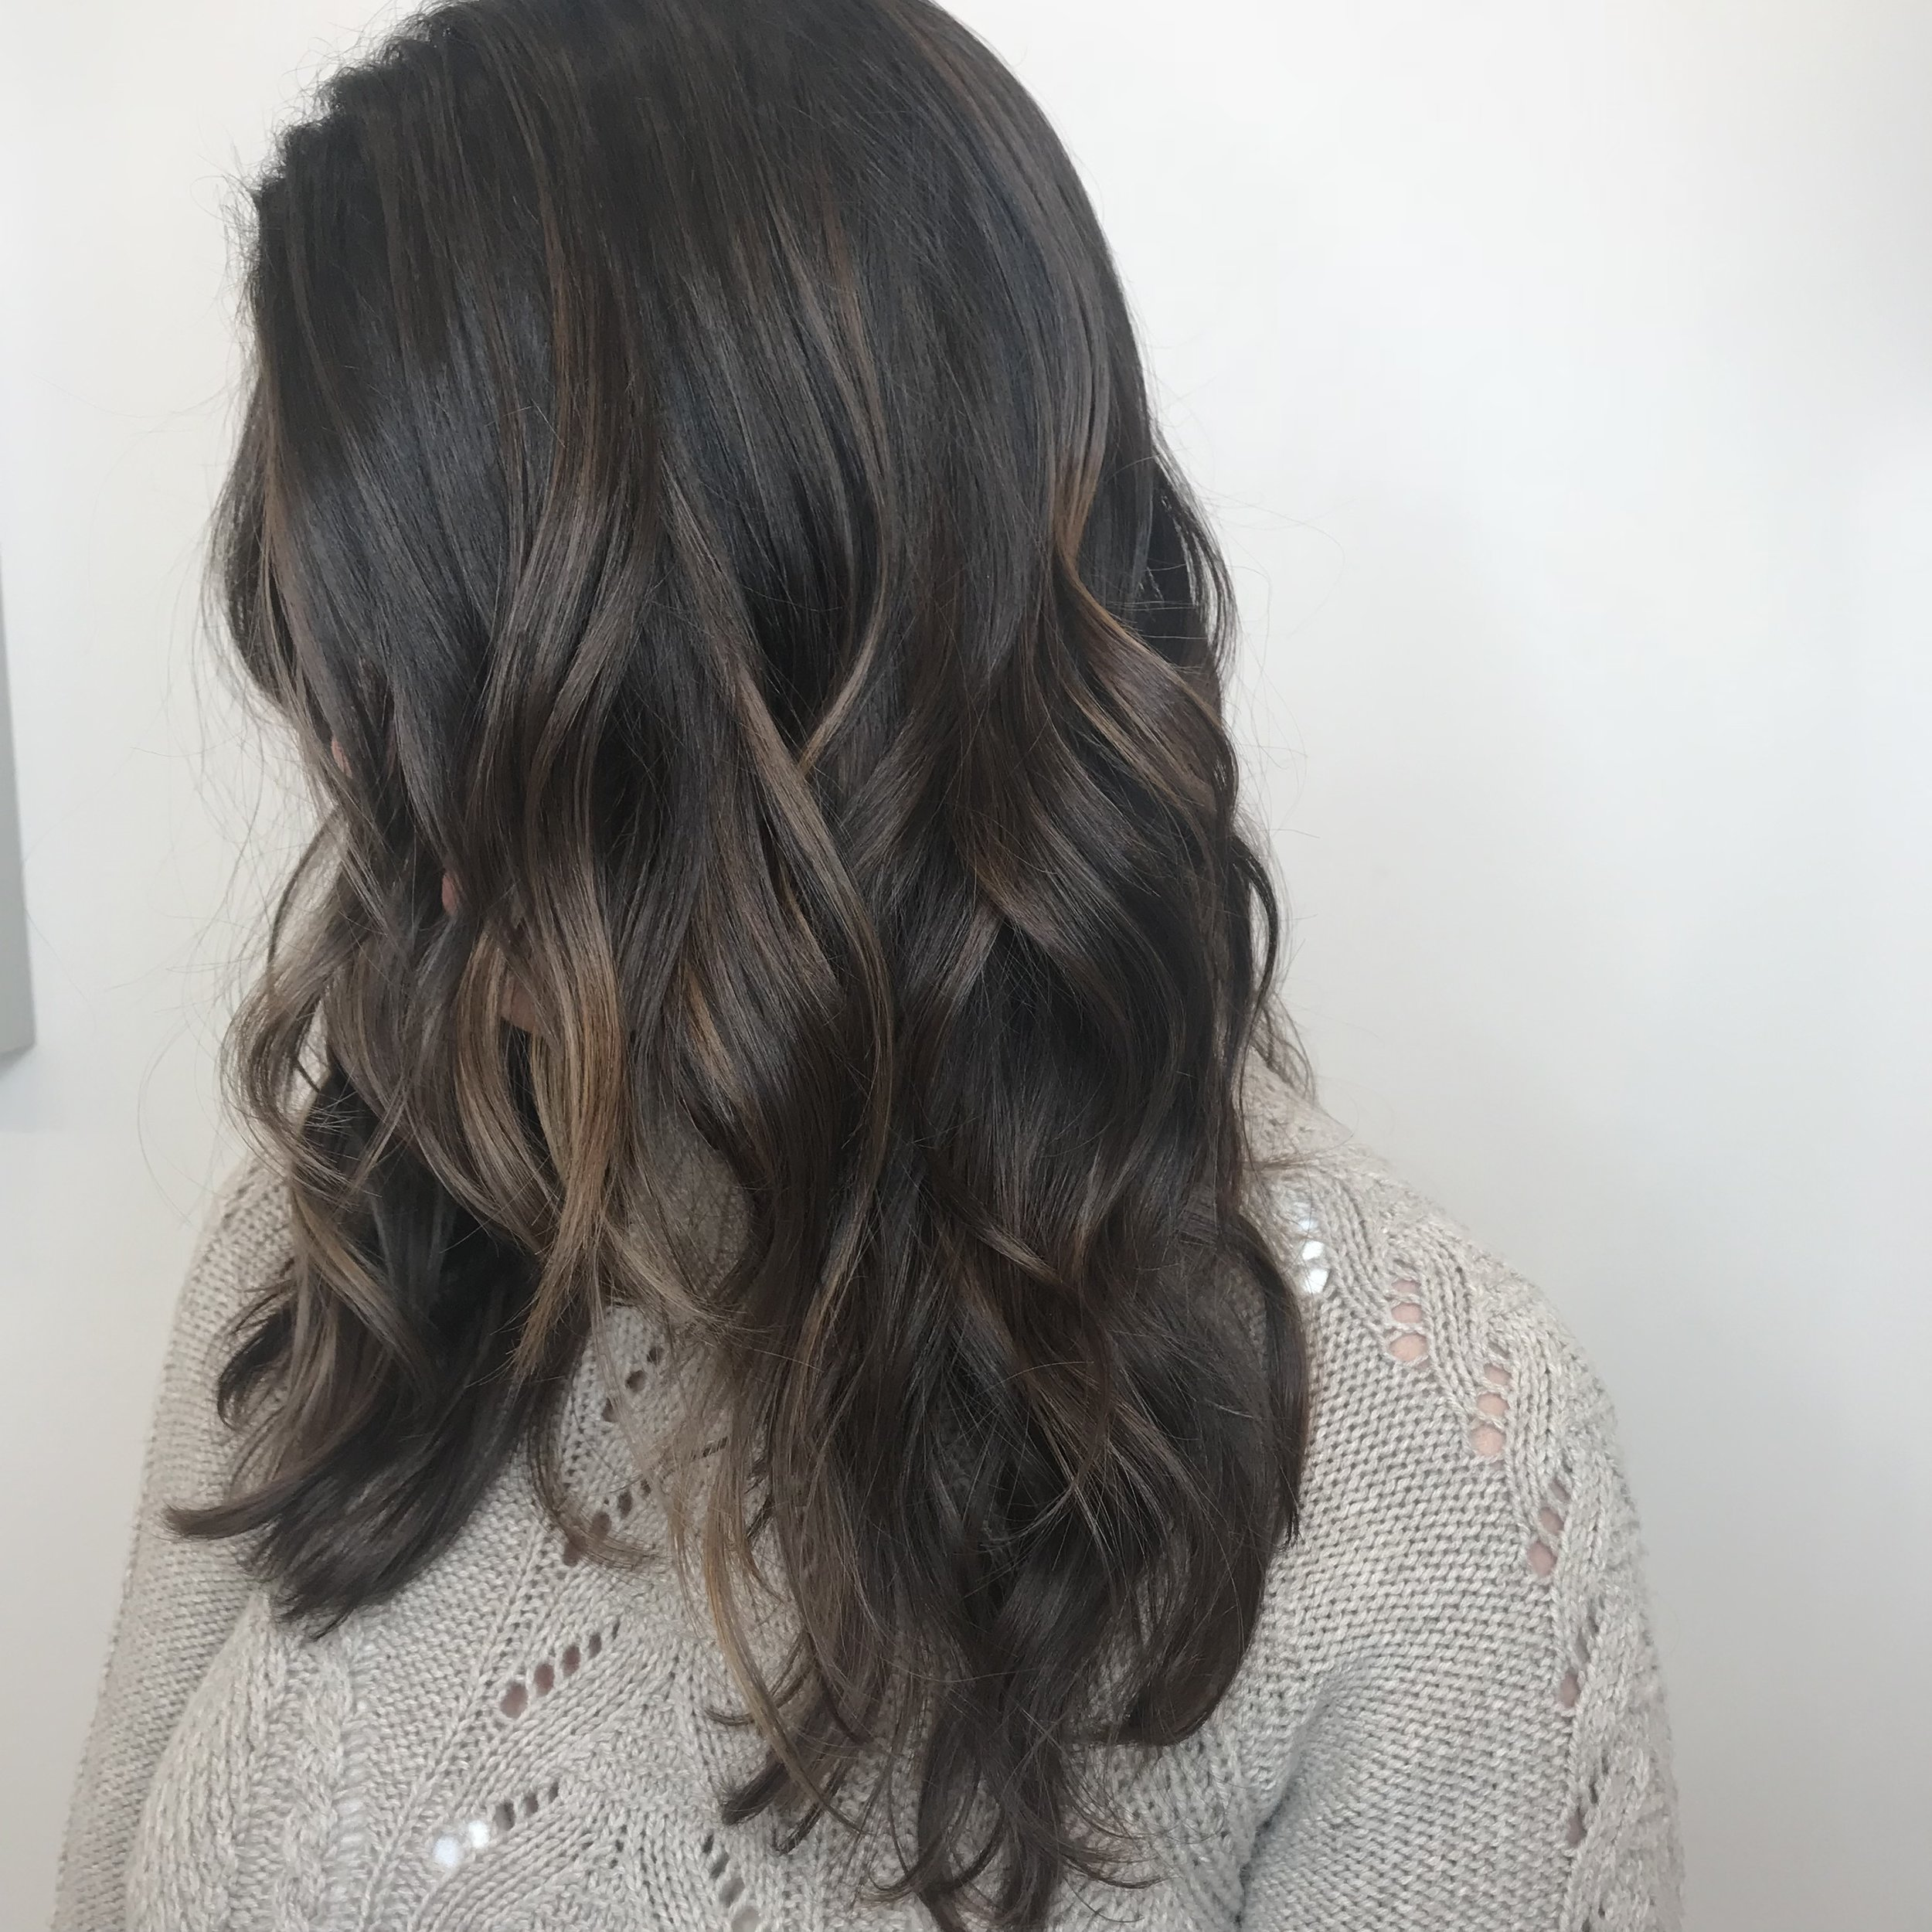 Glowy Highlights - Glowy highlights is to your hair as what a bomb highlighter is to your cheek bones. These lighter pieces strategically placed around your hairline will mimic your skin tone to in turn compliment your face and brighten the over all look of your hair.